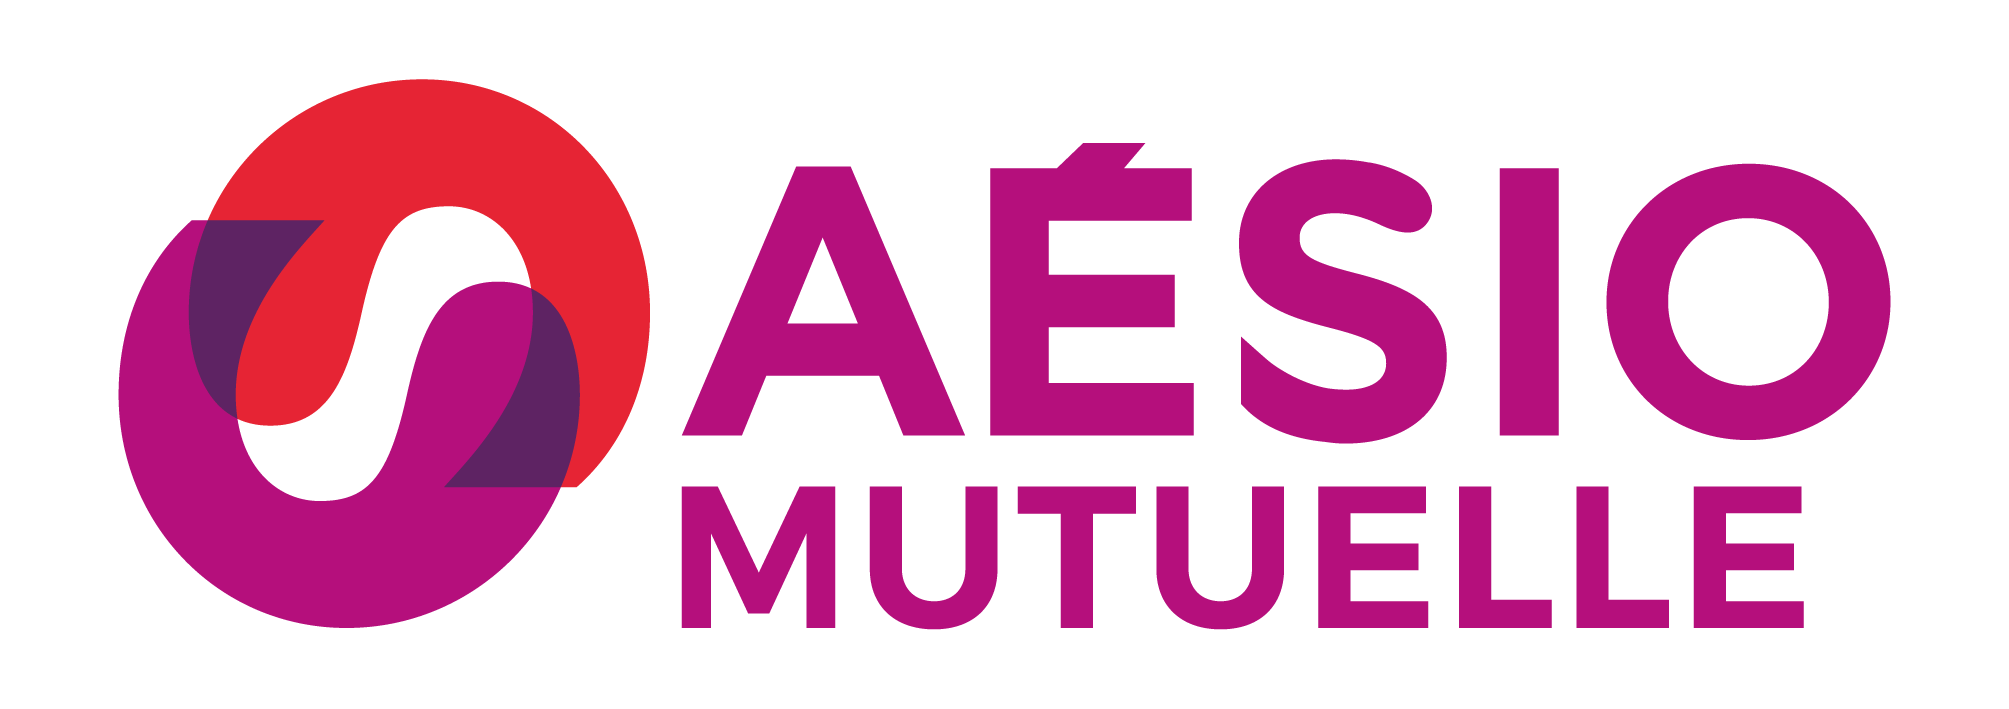 https://rouennormandierugby.fr/wp-content/uploads/2021/01/Logo_AESIO_MUTUELLE.png